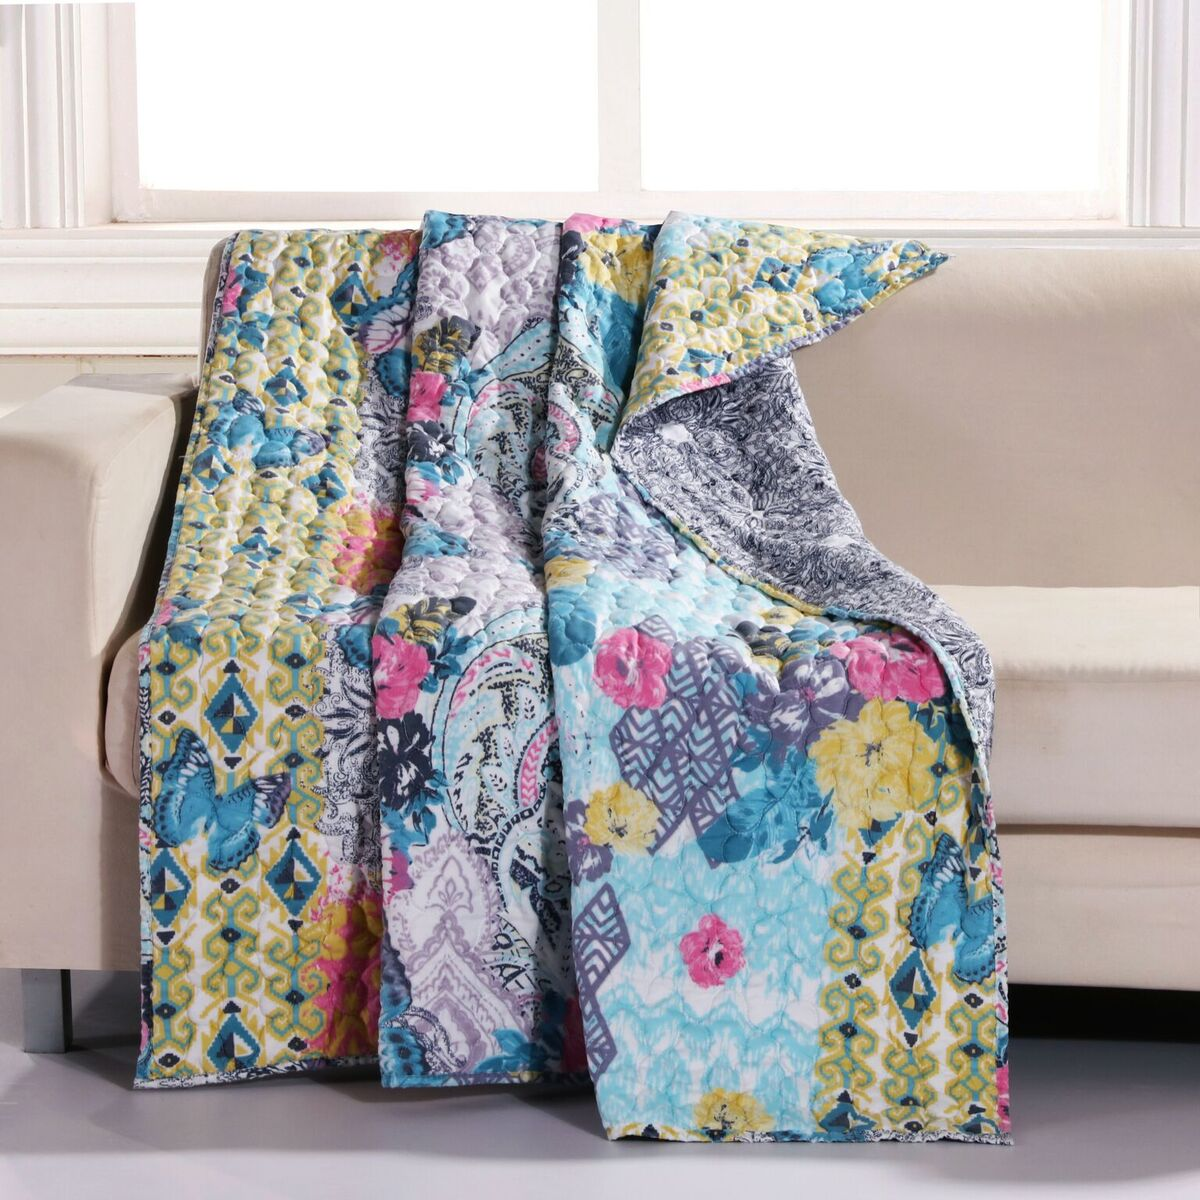 Moxie Multi Accessory Throw